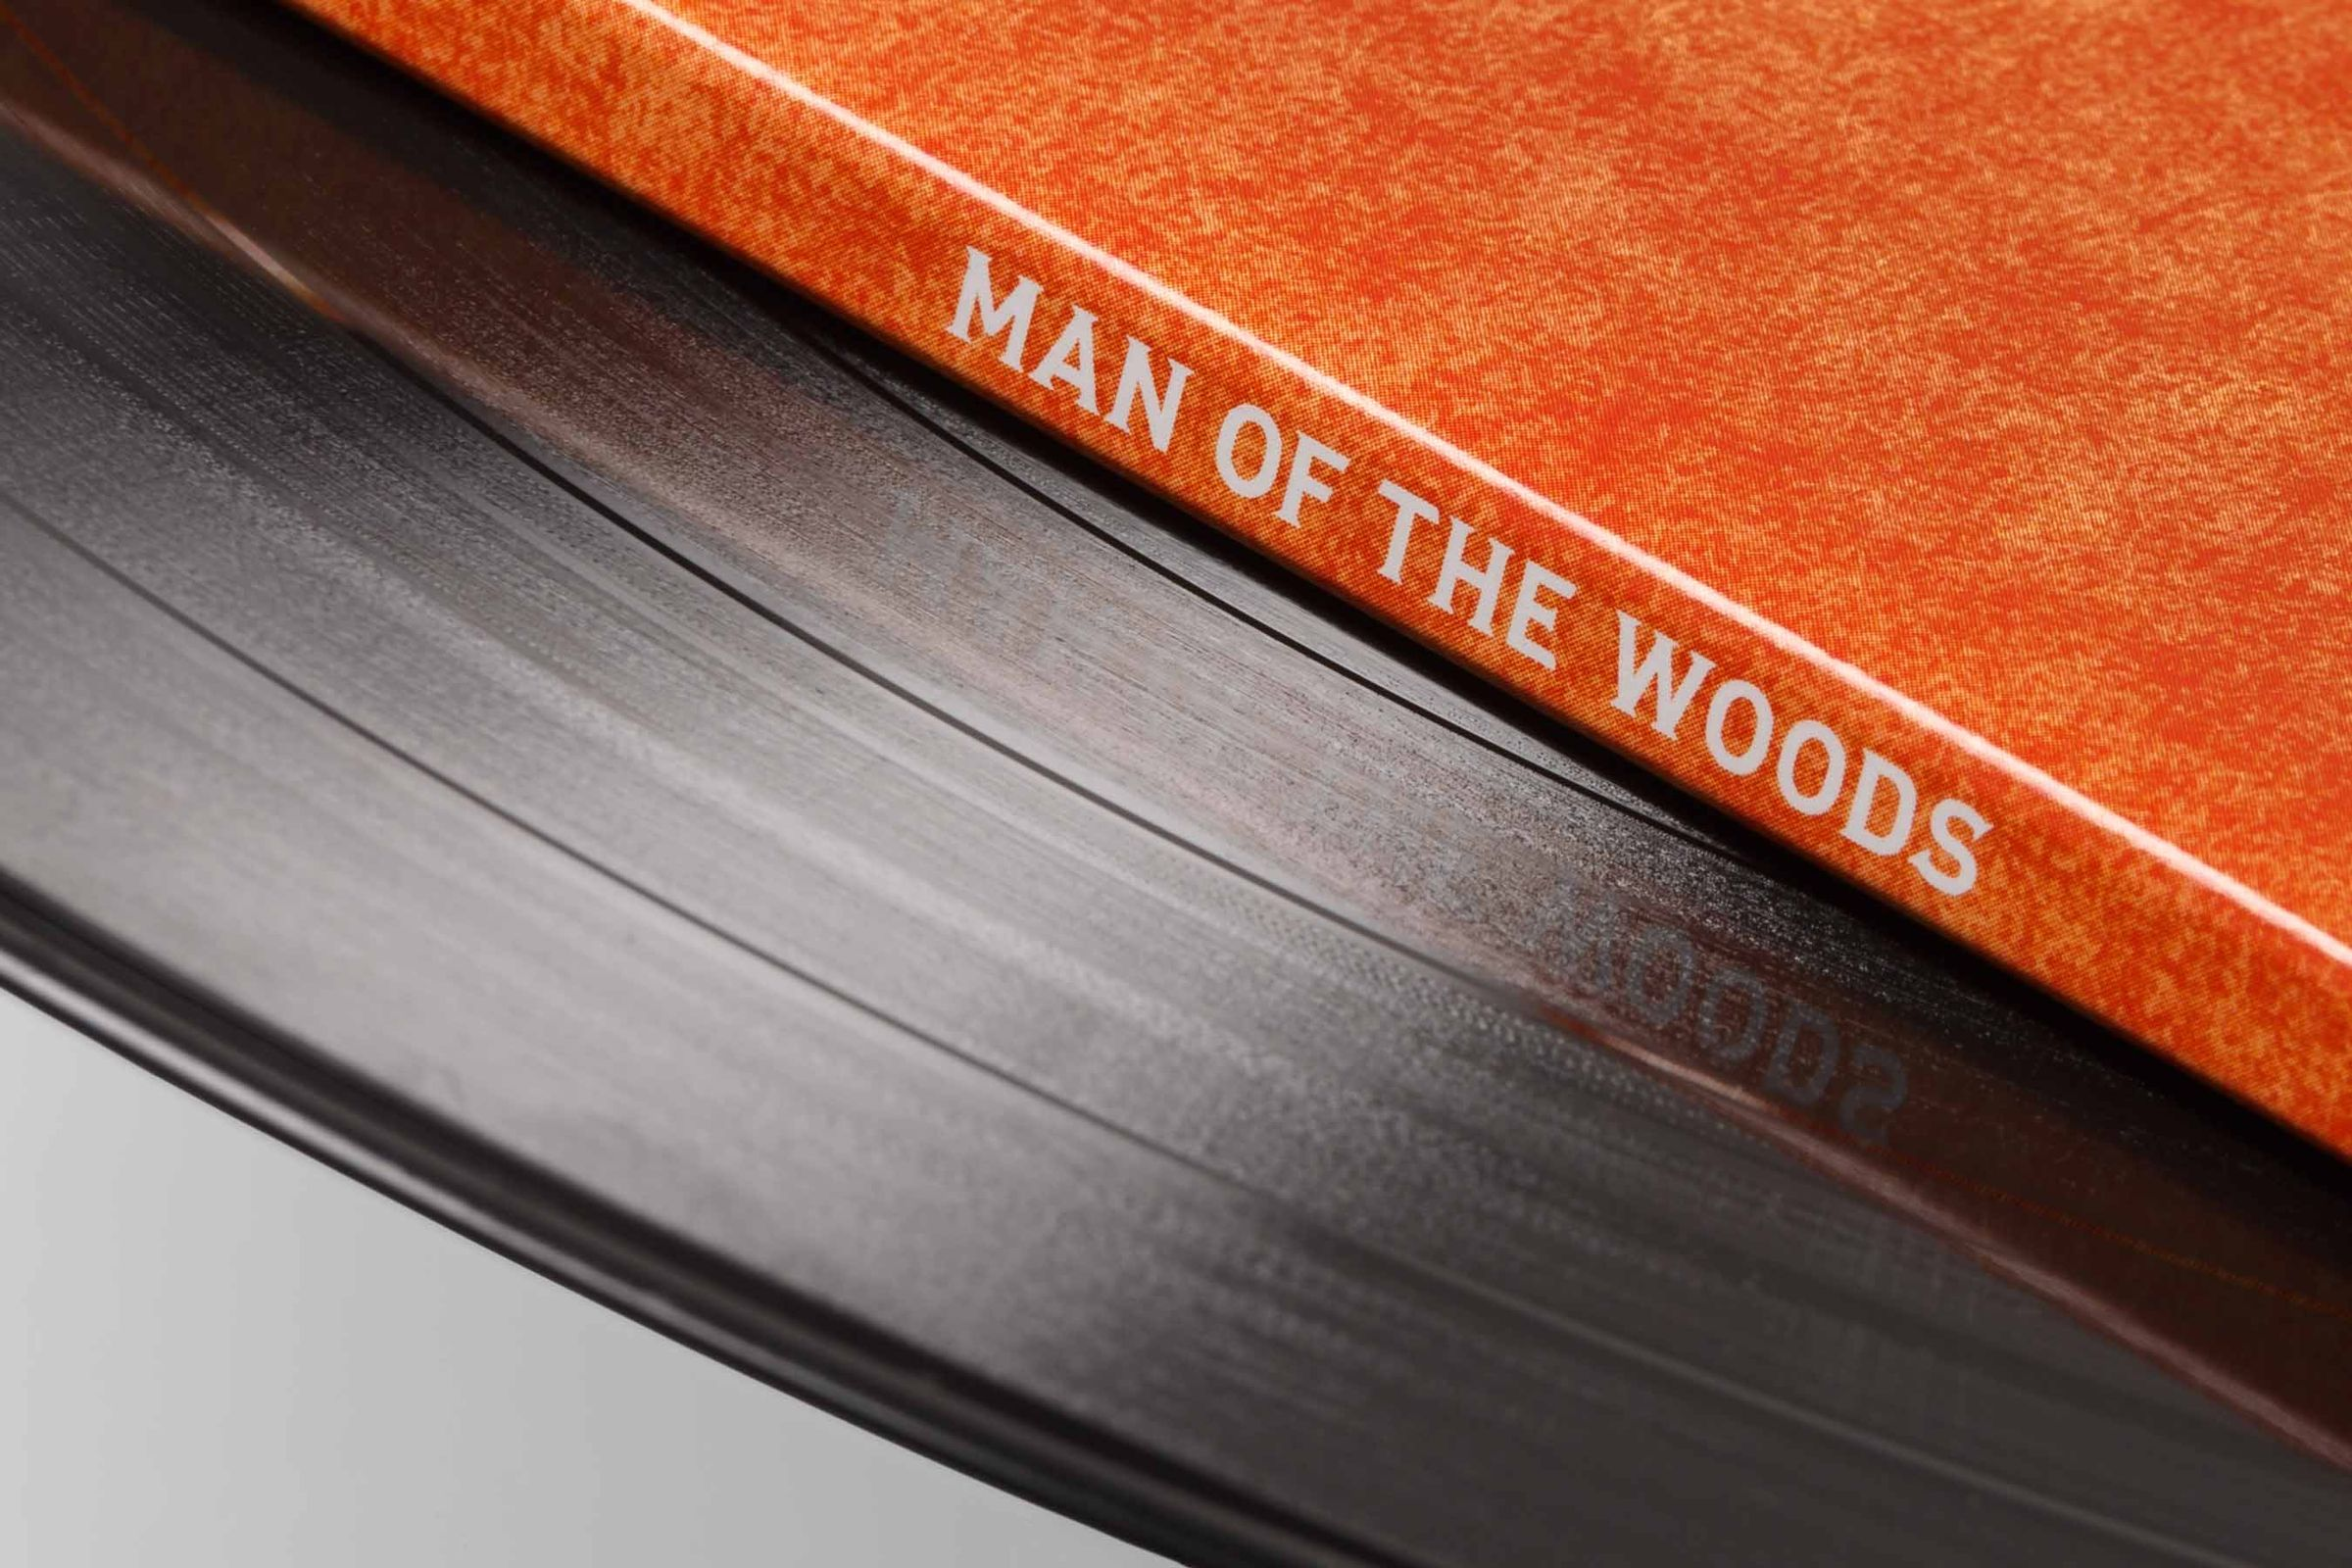 Man of the Woods vinyl zoomed in